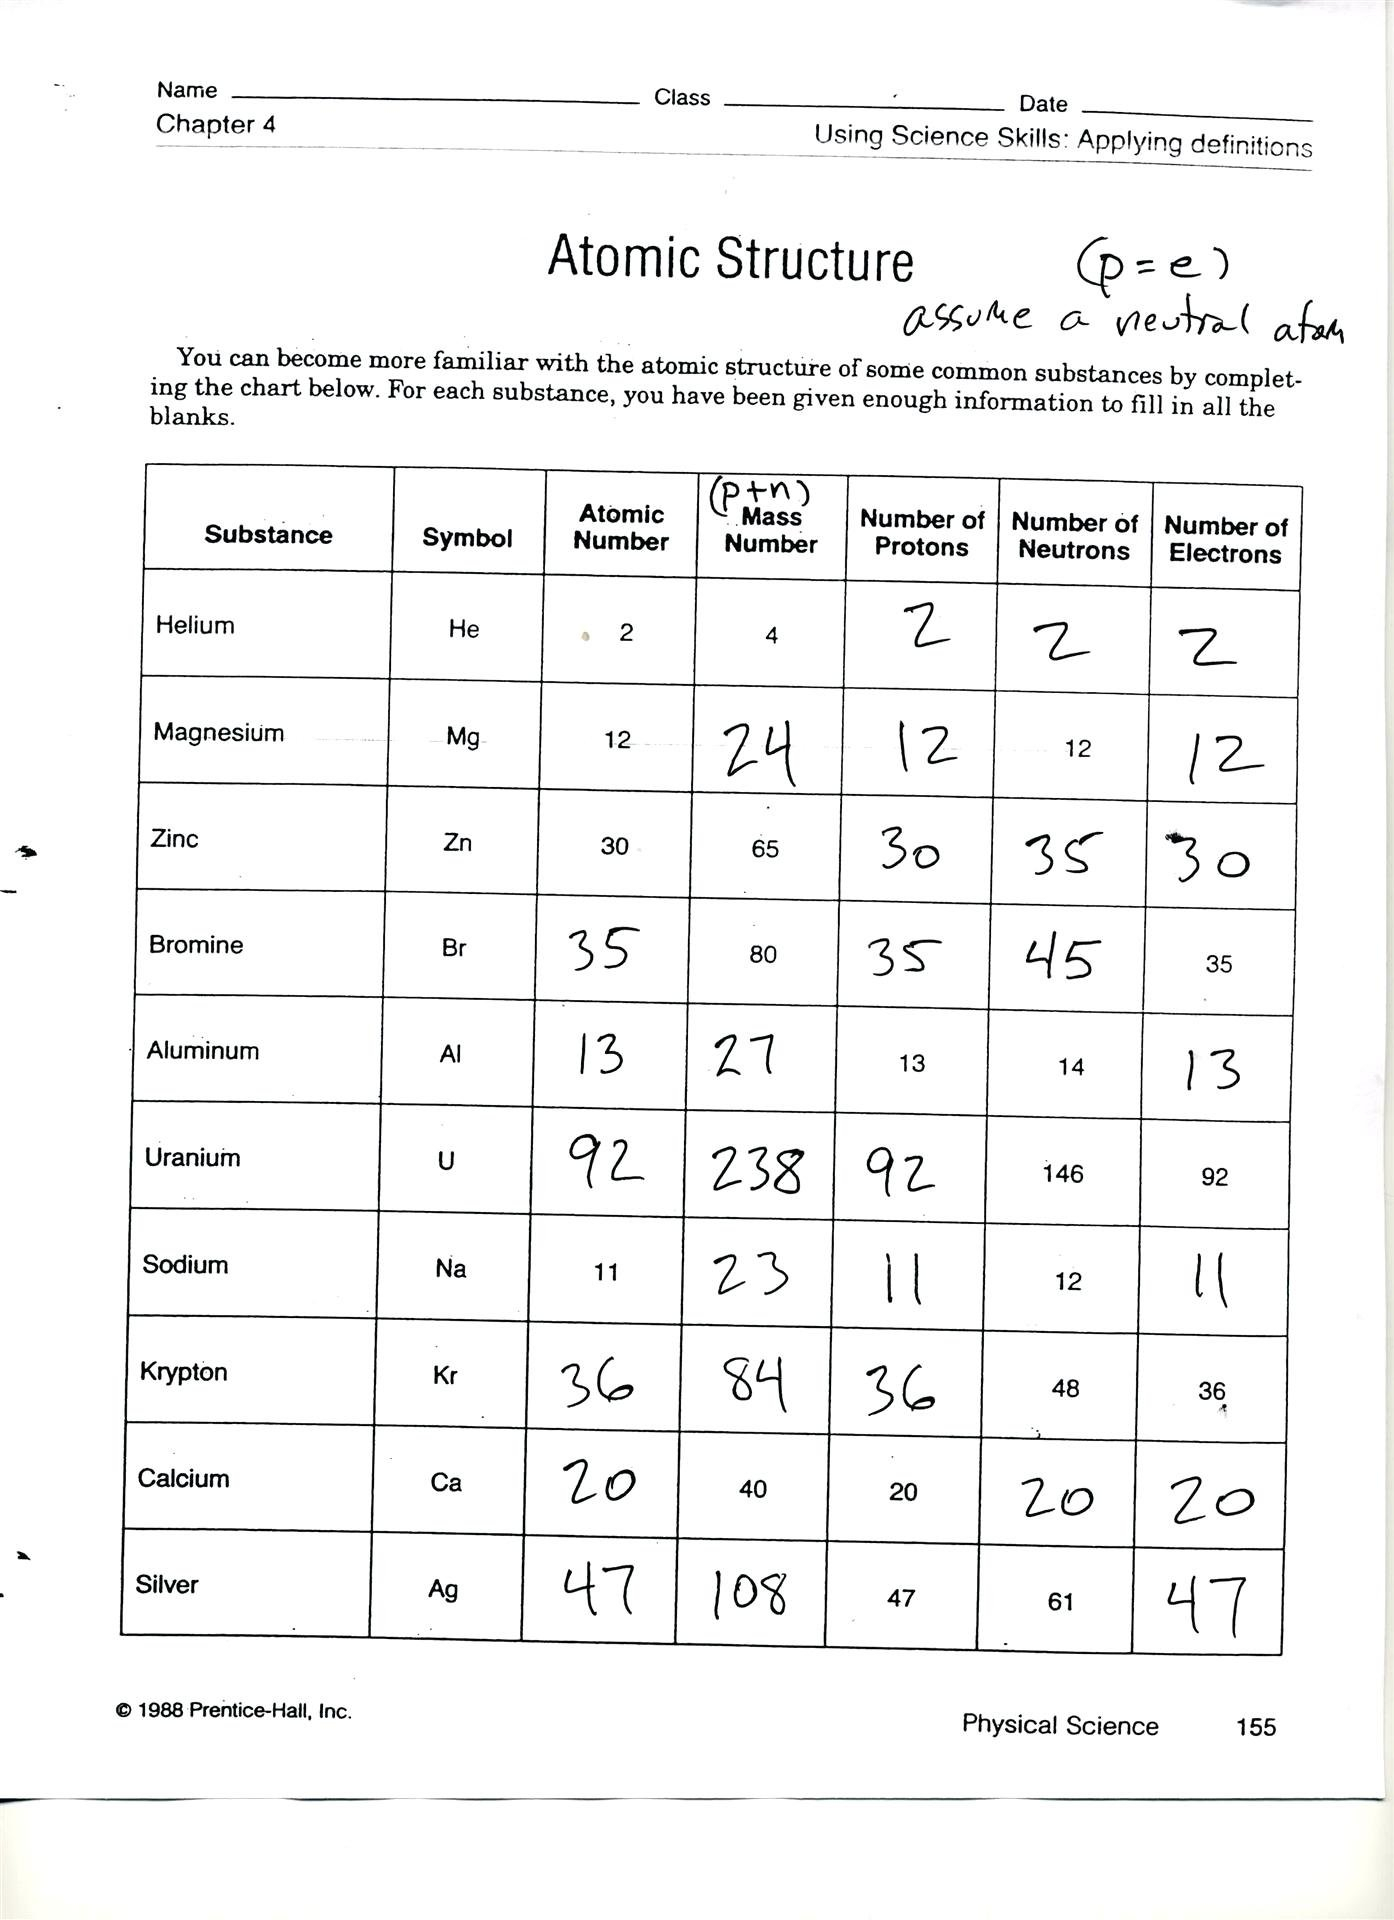 Atomic Structure Worksheet Answer Key — excelguider.com